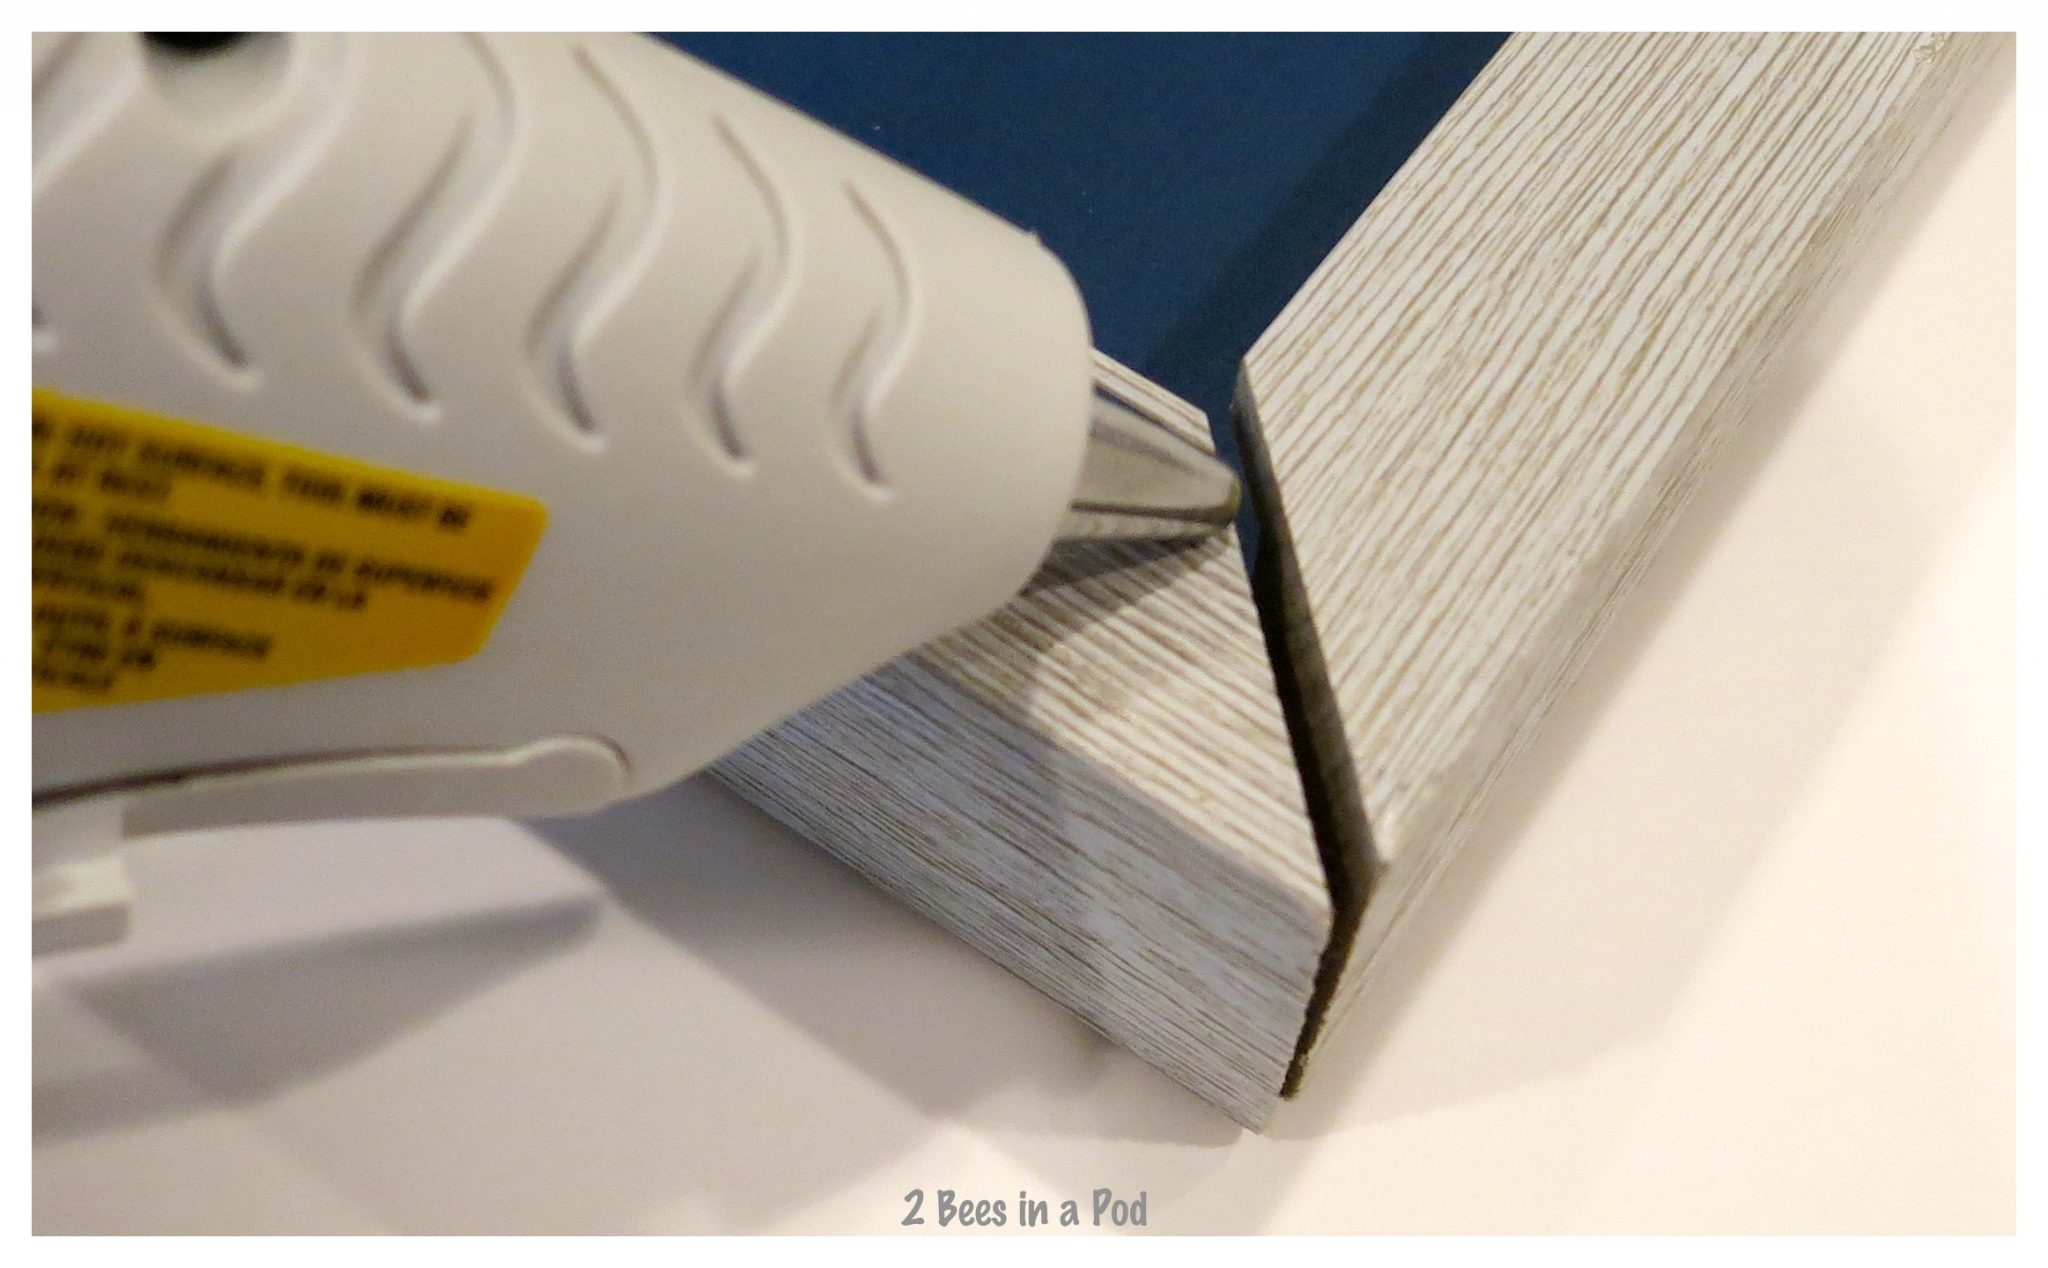 Hot glue was used to repair the corners.